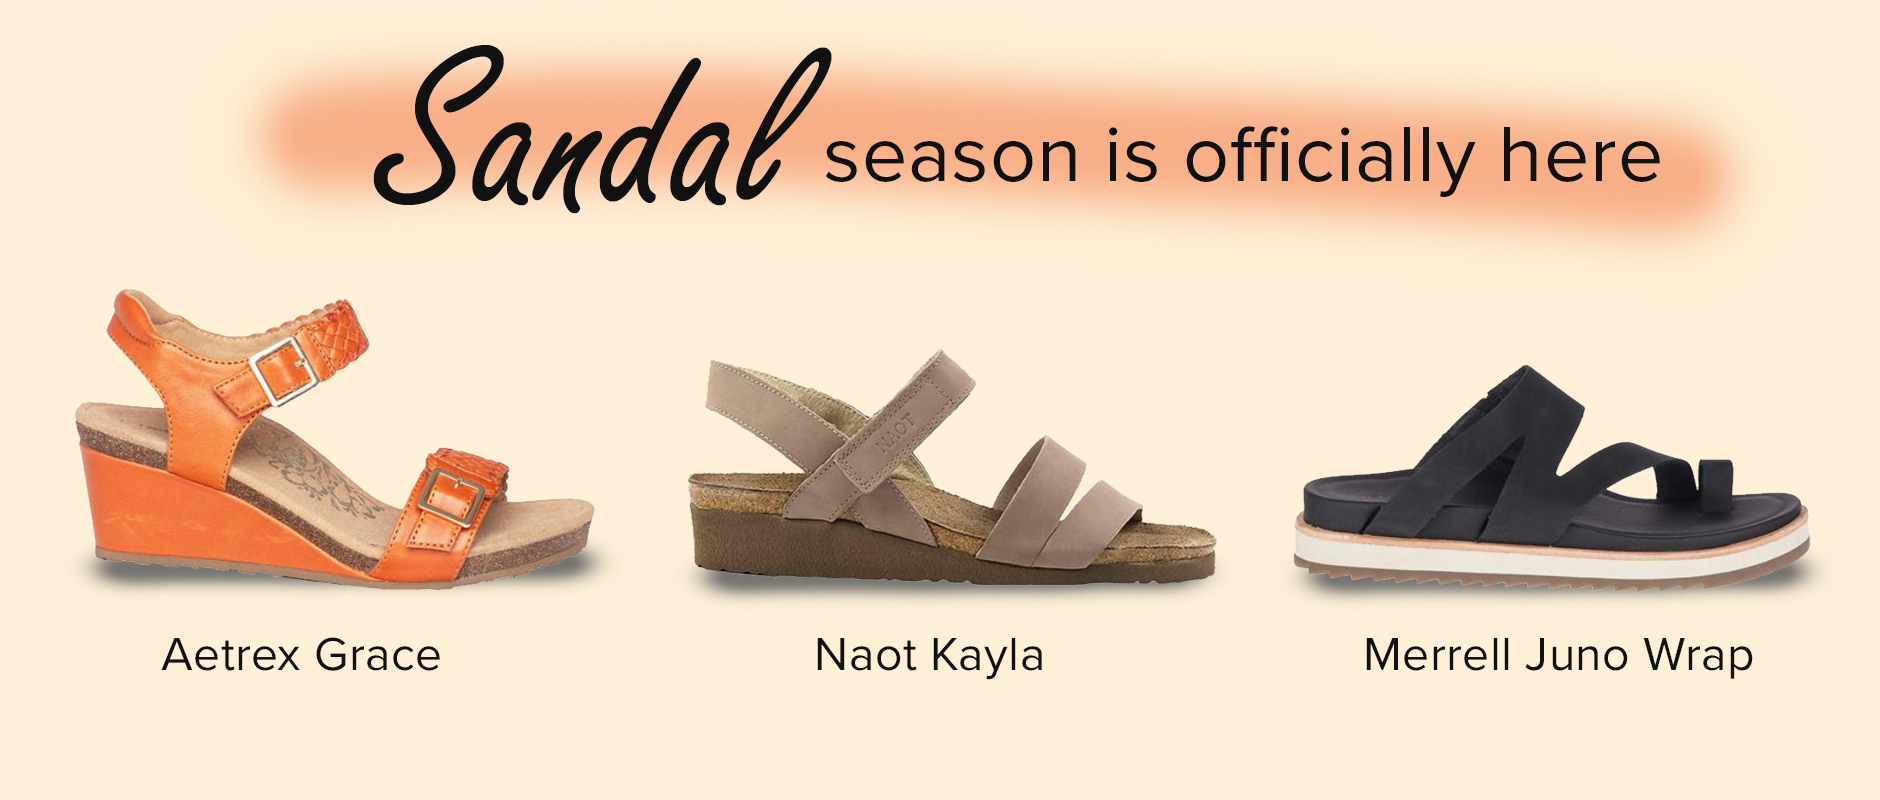 Sandal season is here